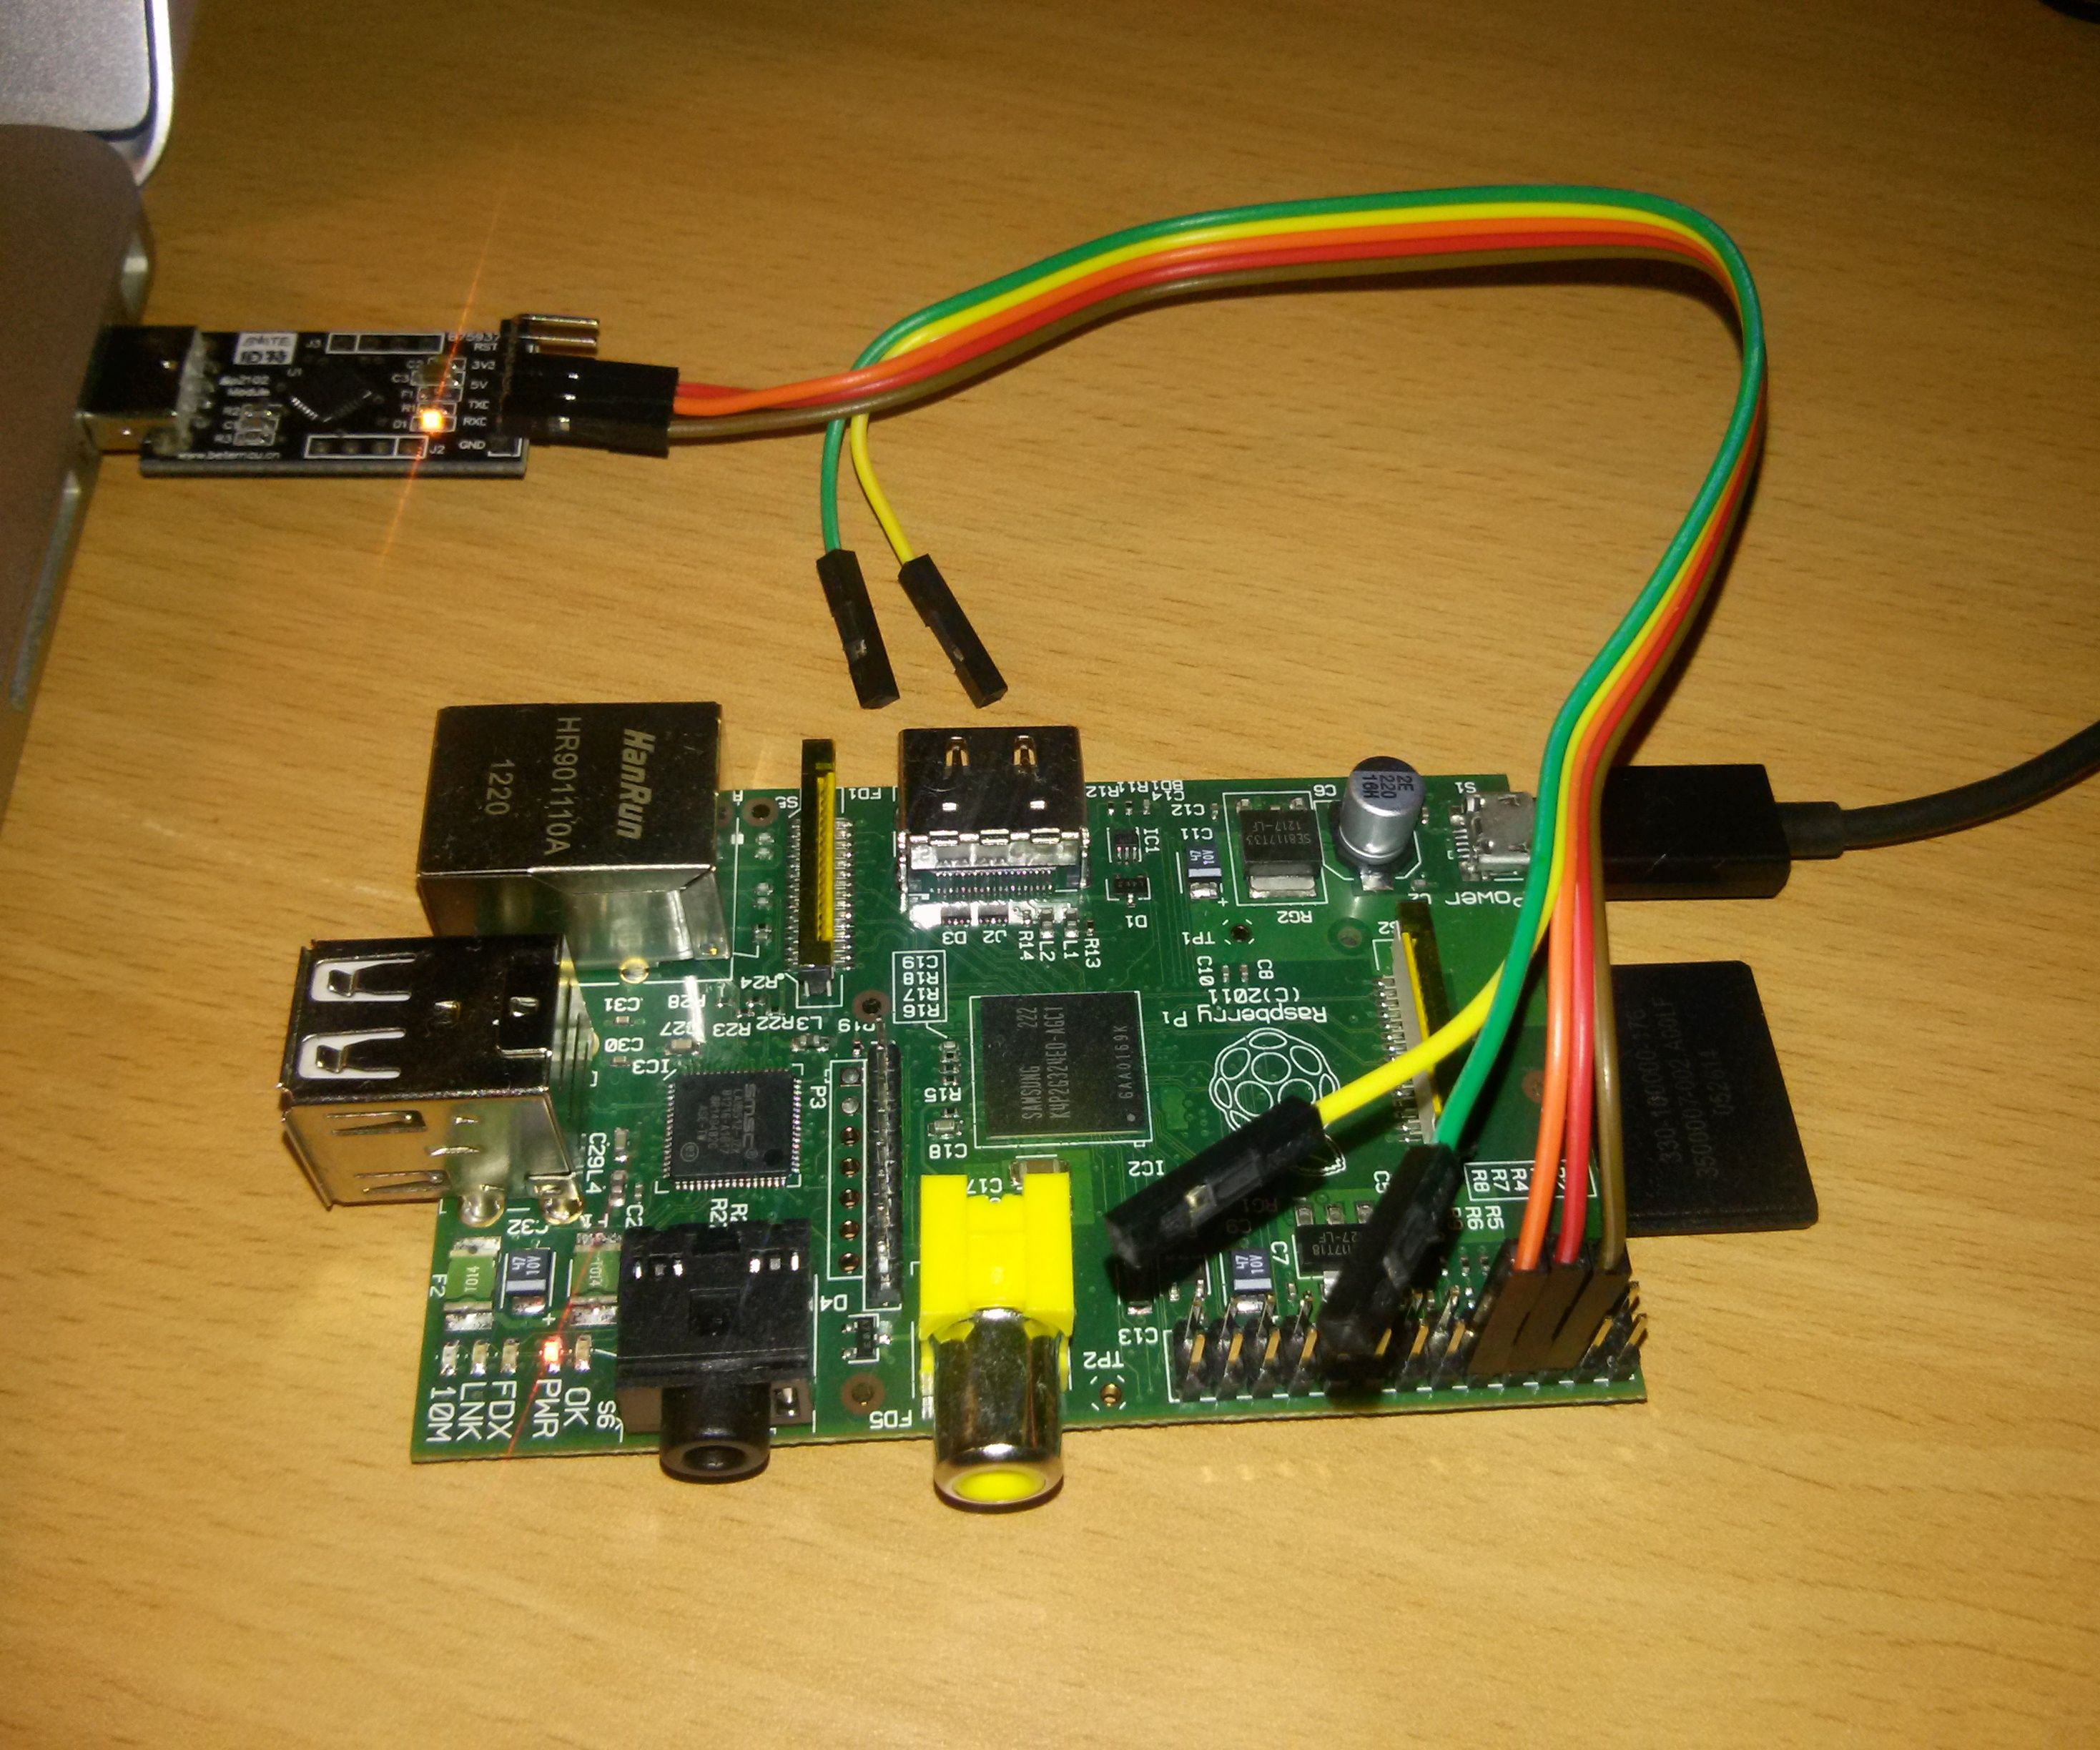 Connect the Raspberry Pi to network using UART